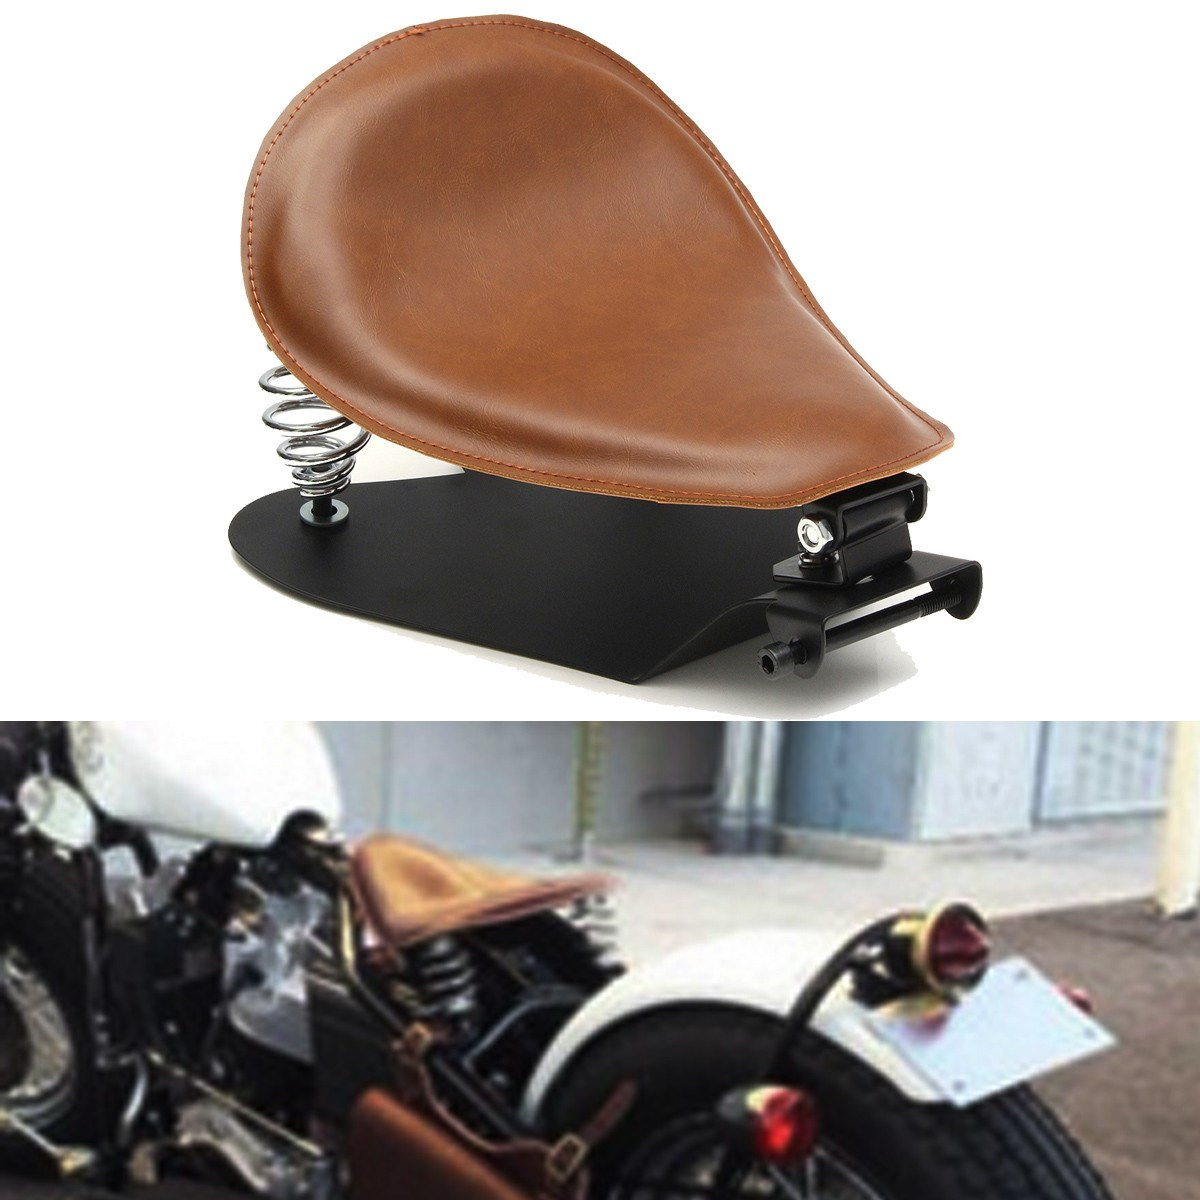 Brown Leather Motorcycle Seat Pan Frame Cover for Harly Sportster Iron XL883 XL1200 X48 72